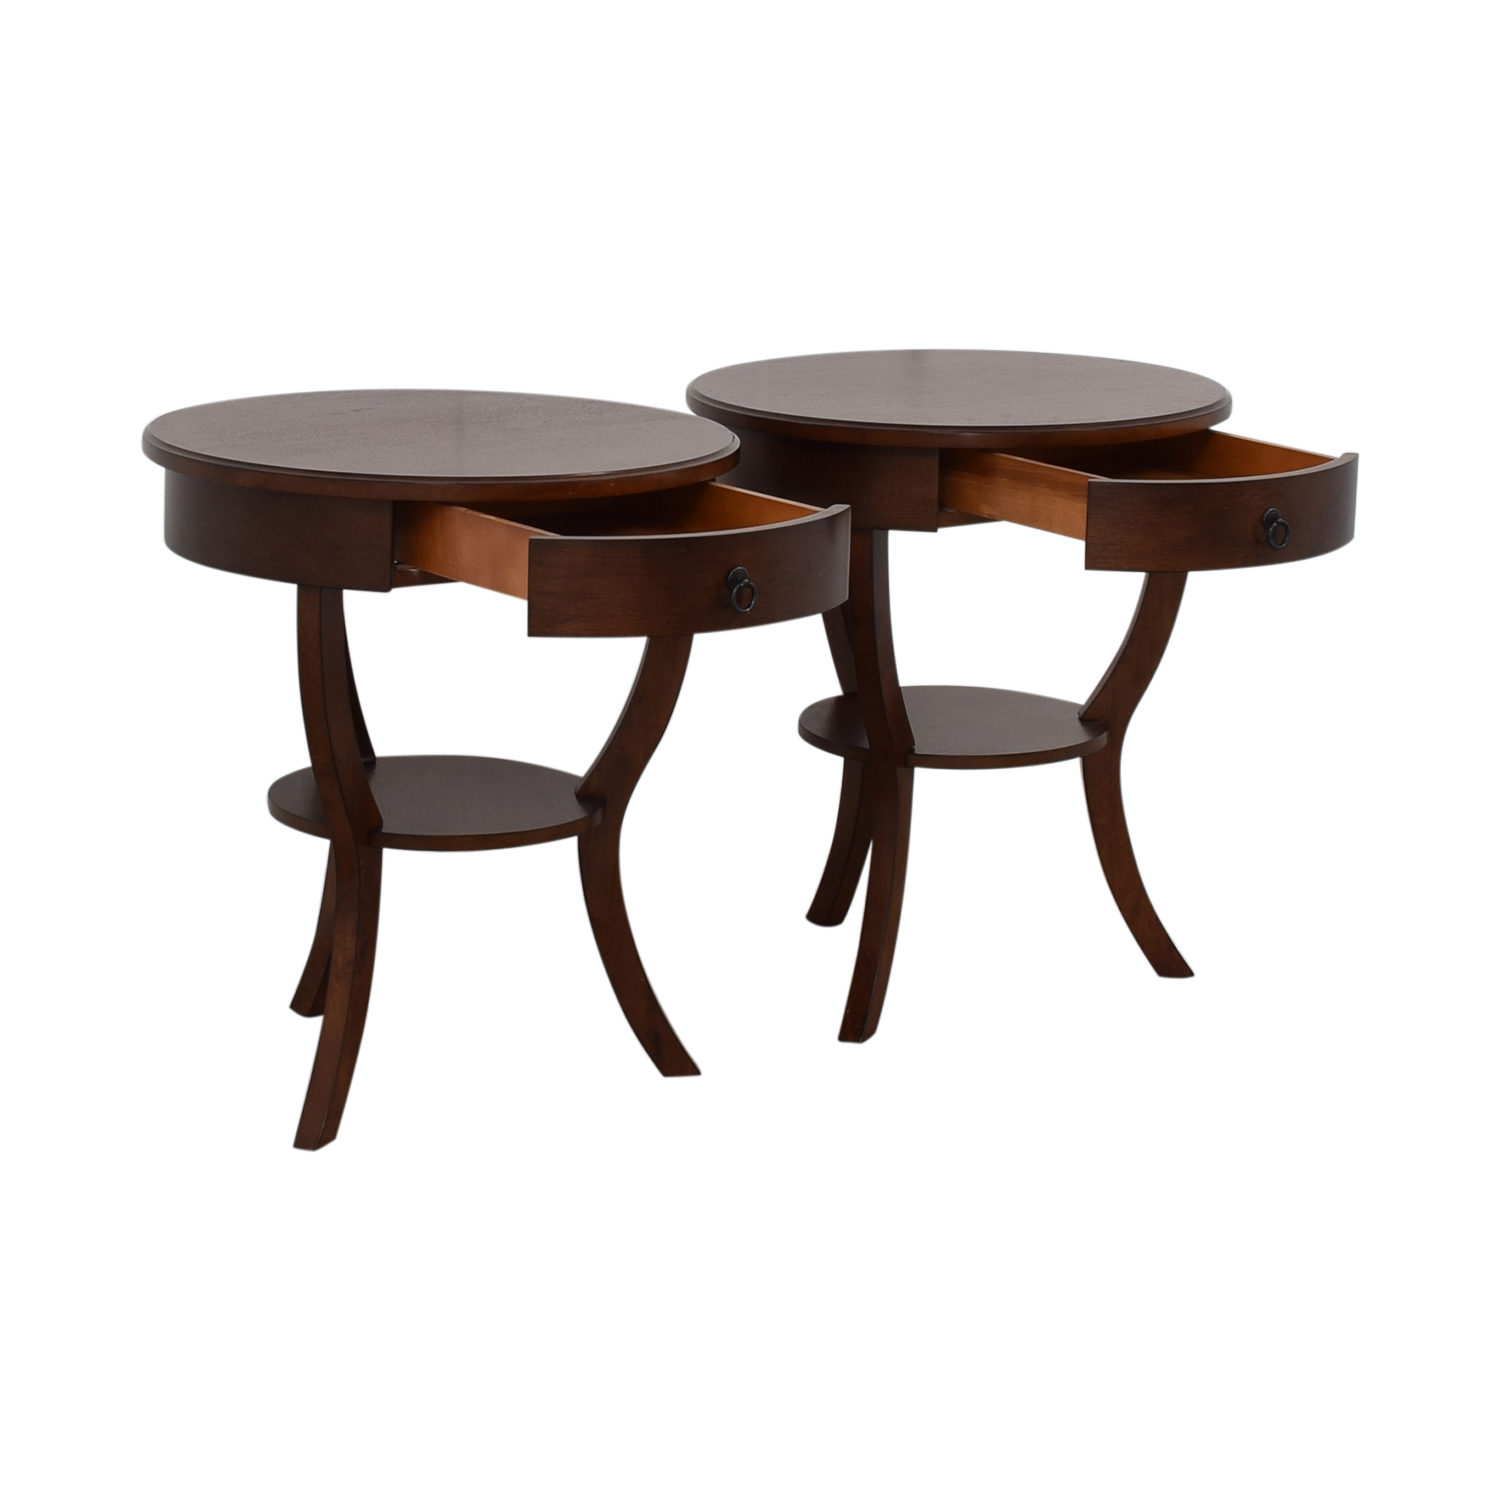 buy Pottery Barn Carrie Round Single-Drawer Pedestal End Tables Pottery Barn Tables